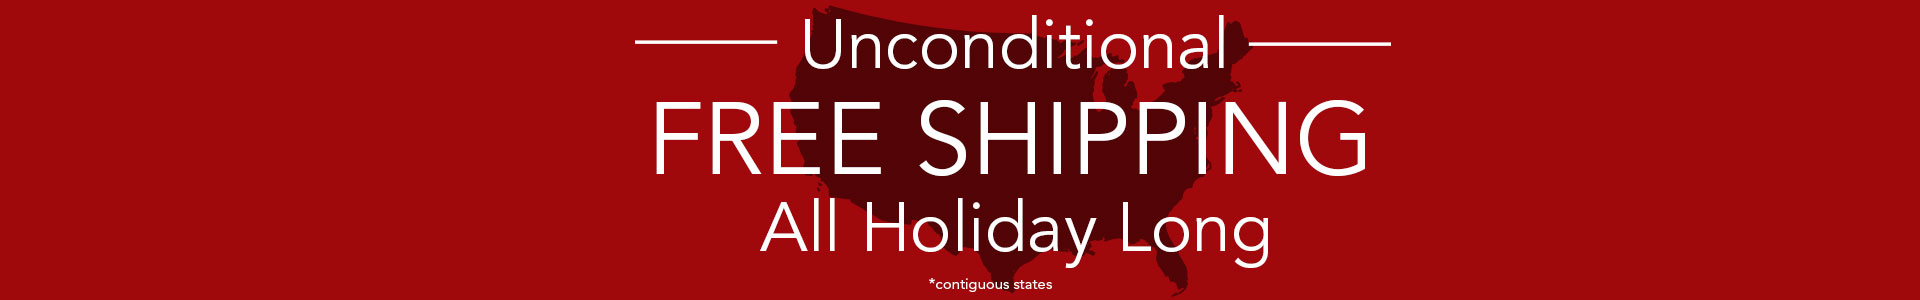 Unconditional FREE Shipping...All Holiday Long